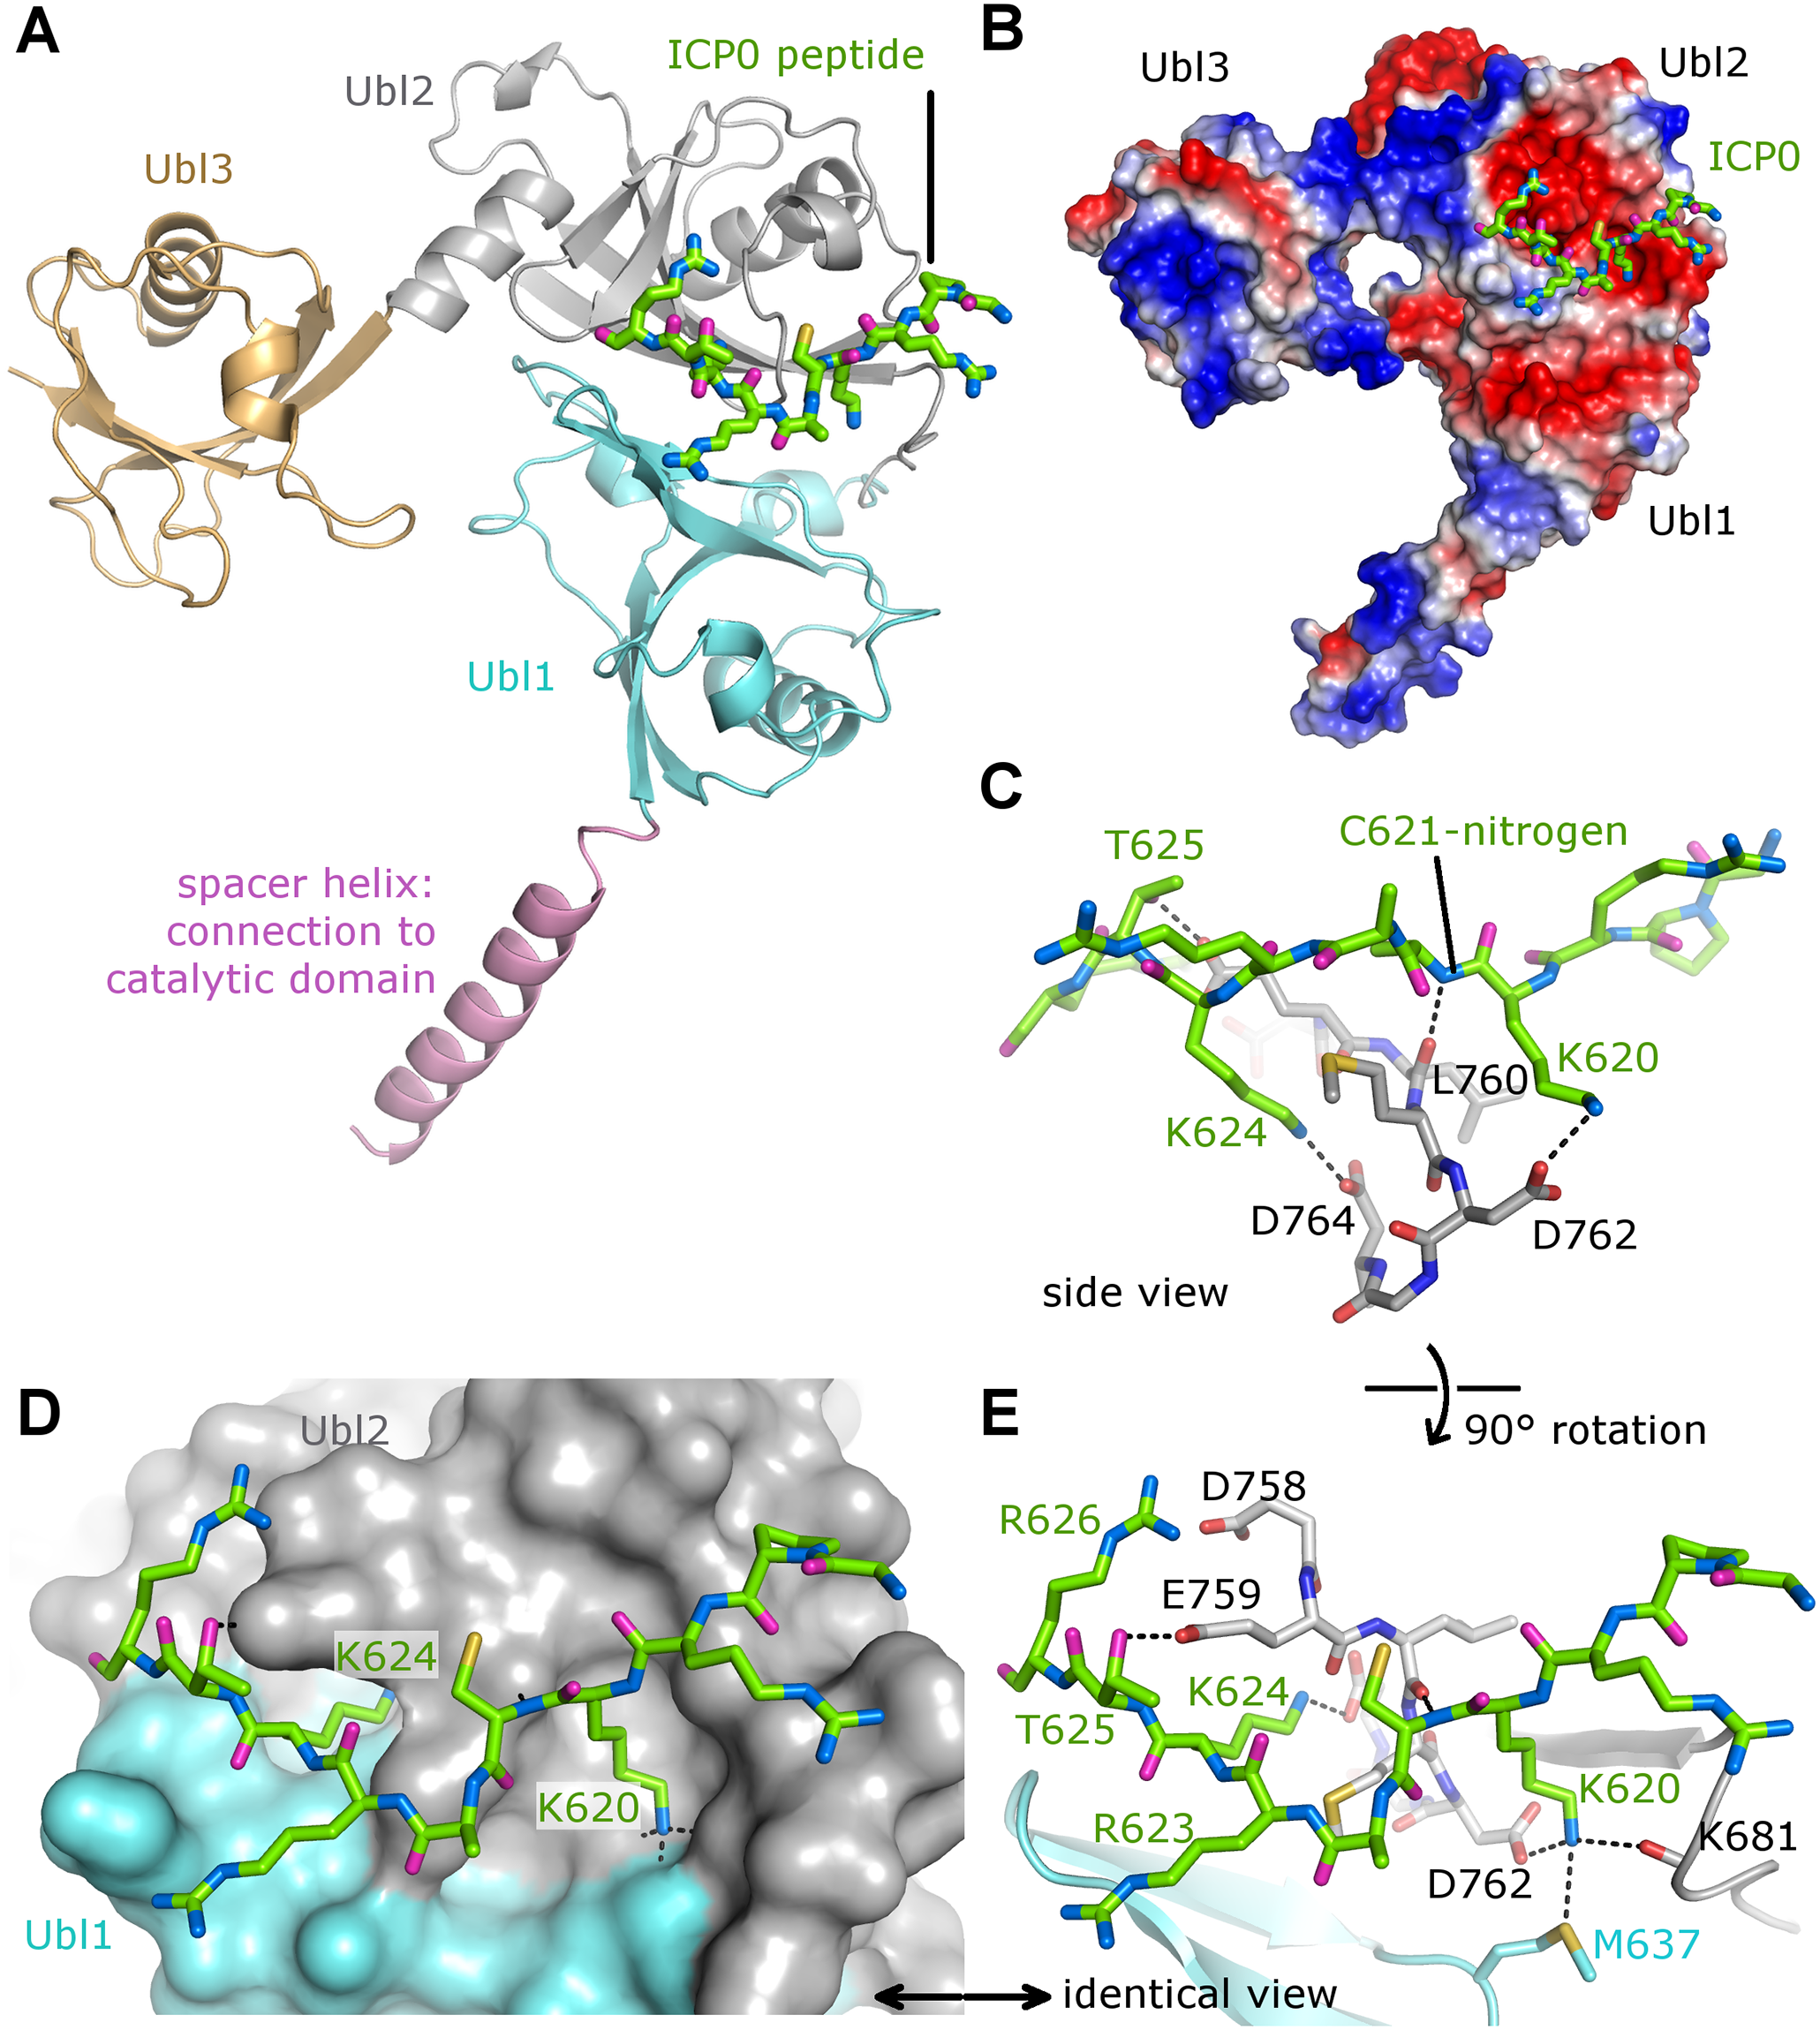 The crystal structure of the Ubl123-ICP0 peptide complex.